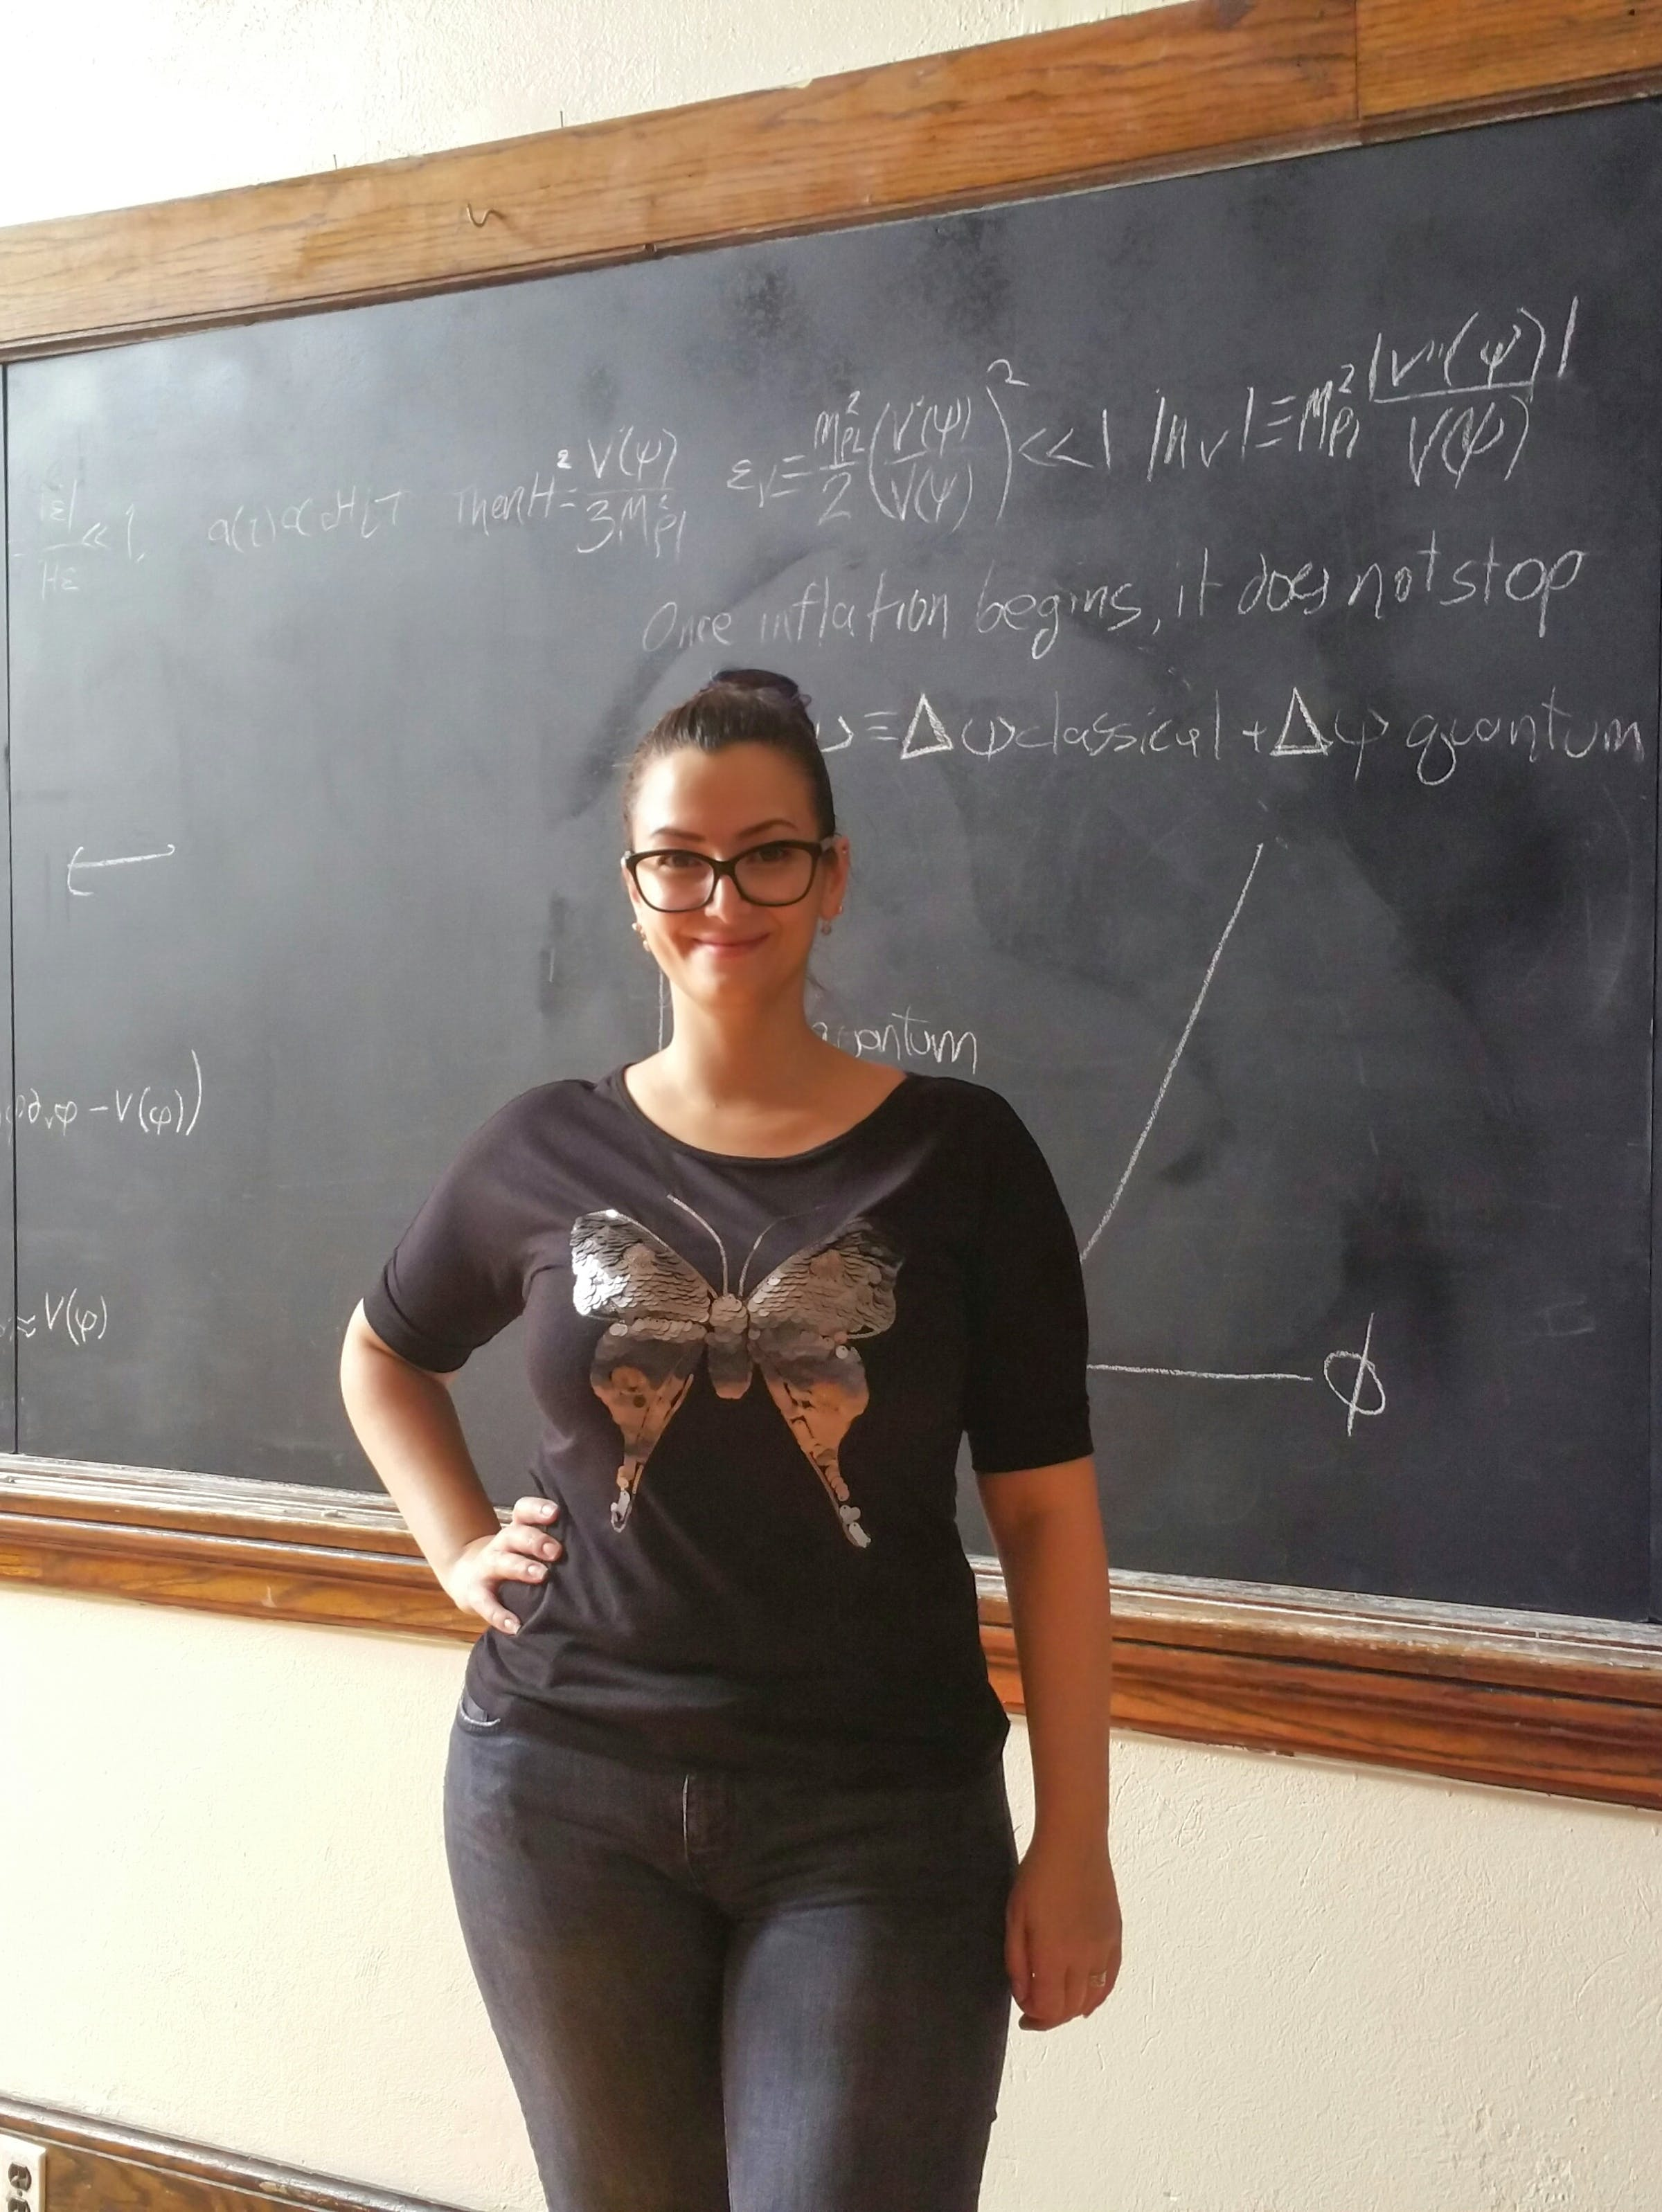 Sophia Nasr on the '12 Monkeys' set, in front of the chalk board with the equations she prepared.